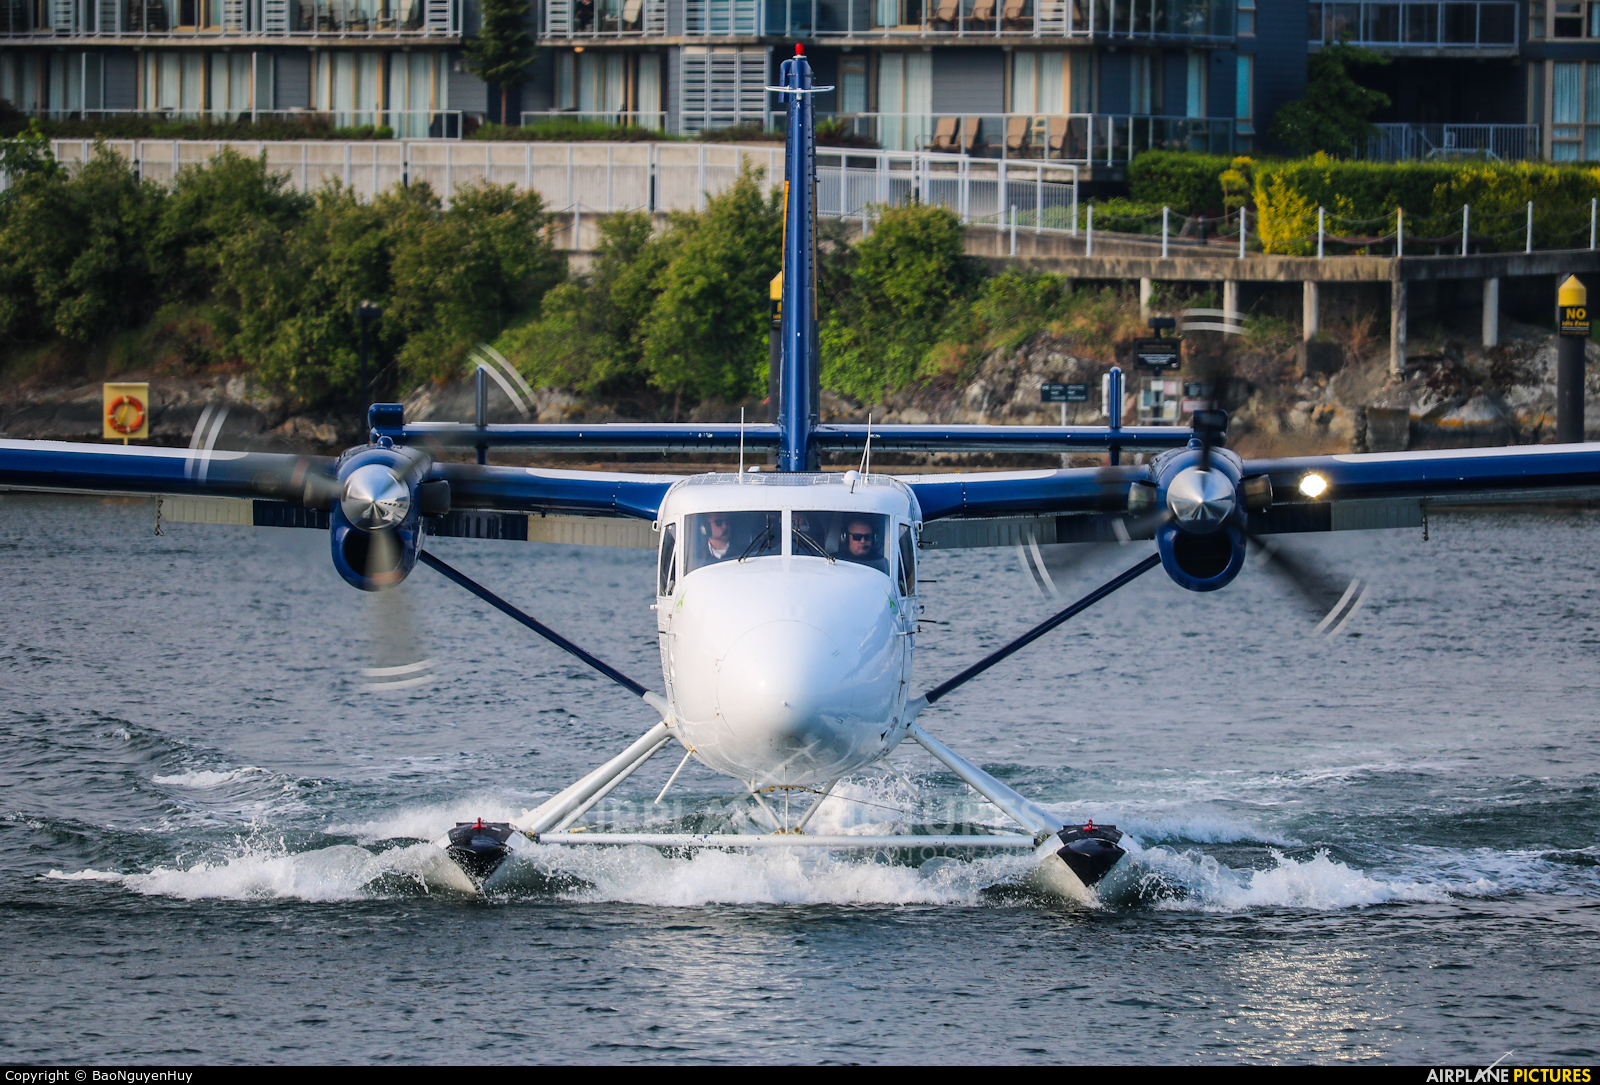 Harbour Air C-FGQH aircraft at Victoria Harbour, BC